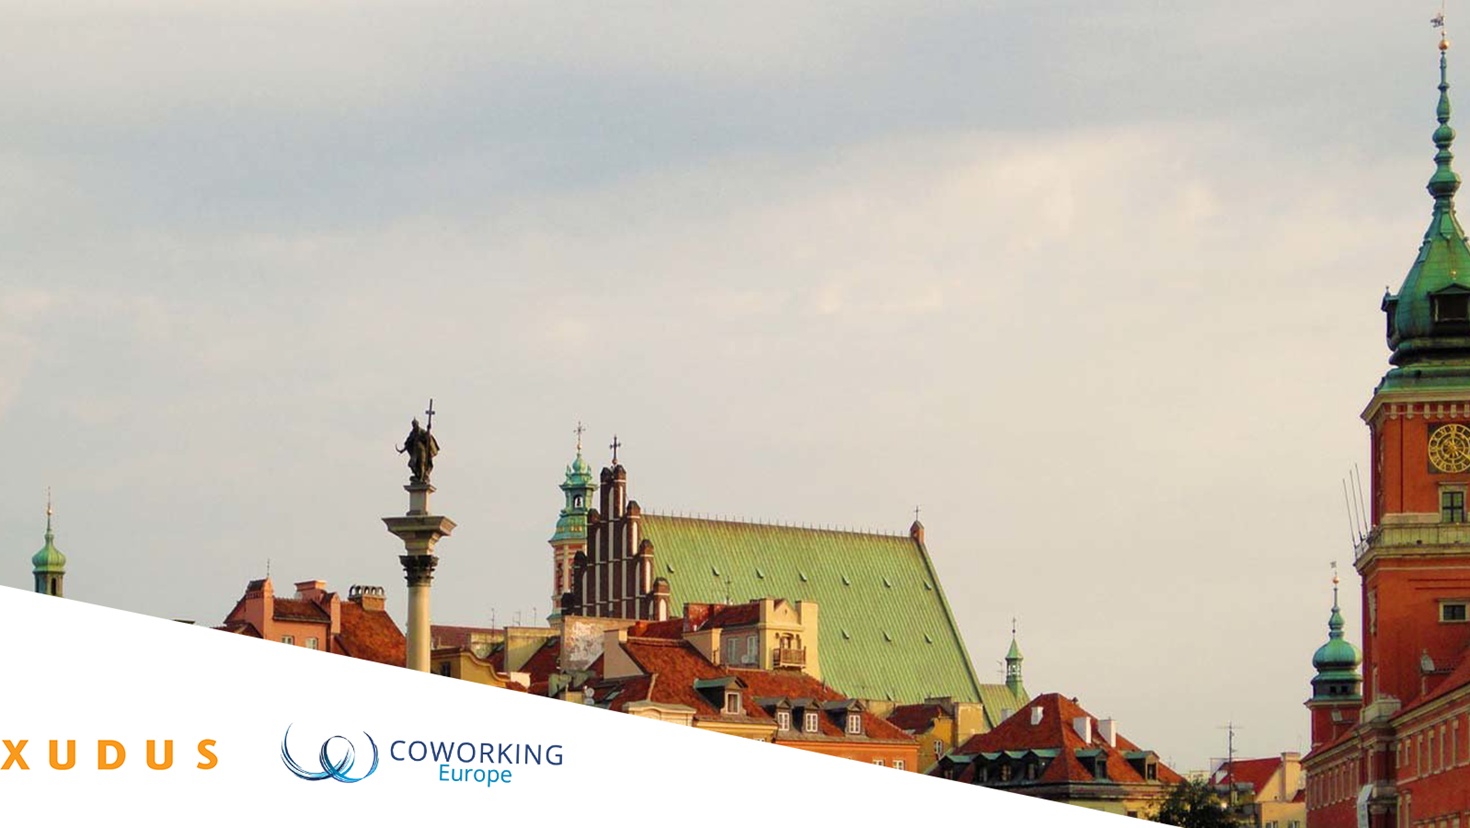 Will you be there? Coworking Europe Conference comes to Poland for the first time!